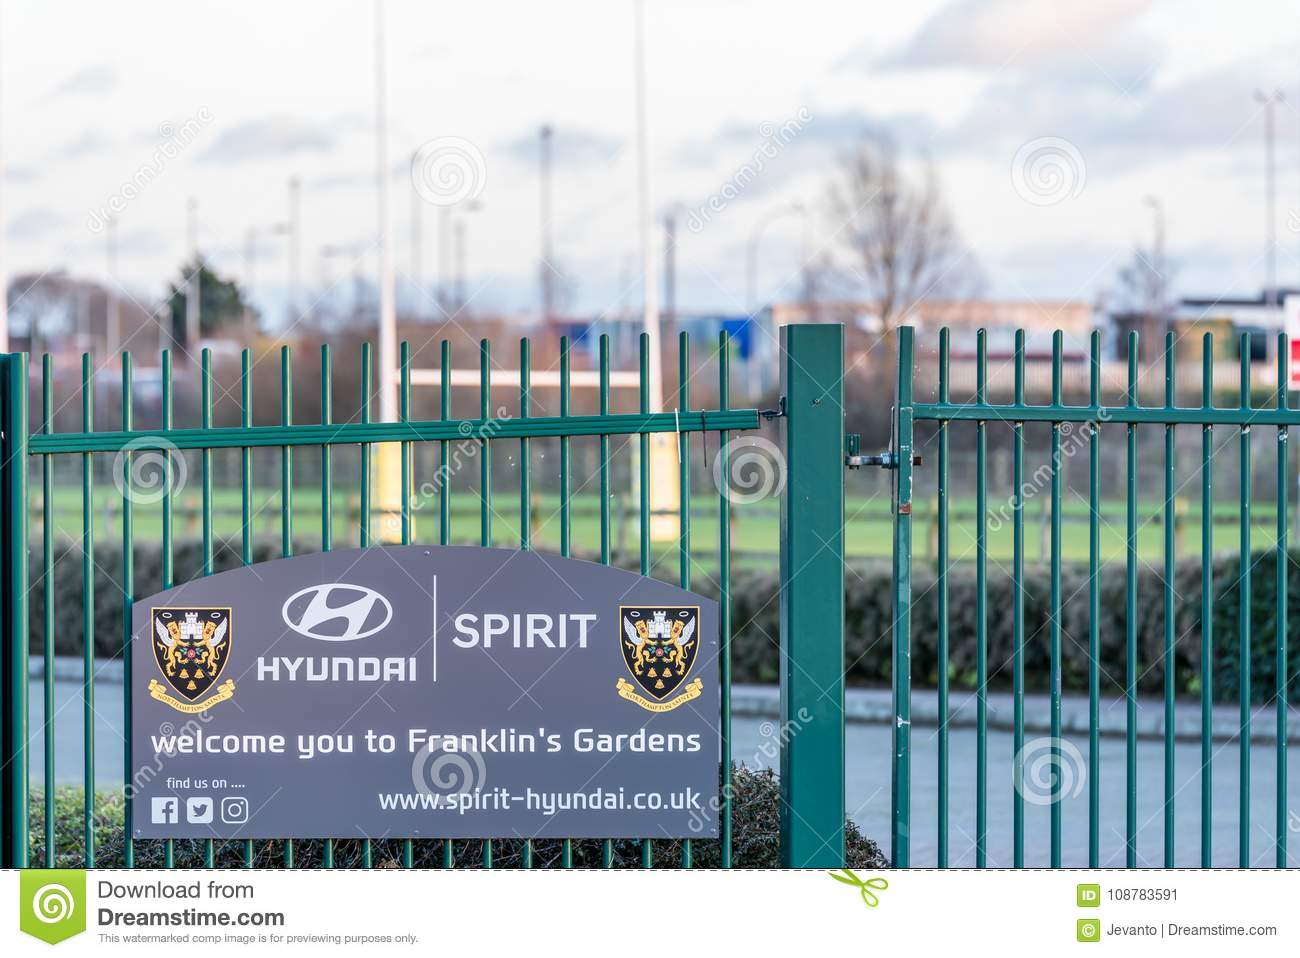 Northampton UK January 04, 2018: Hyunday Spirit welcomes you to Franklin Gardens home of